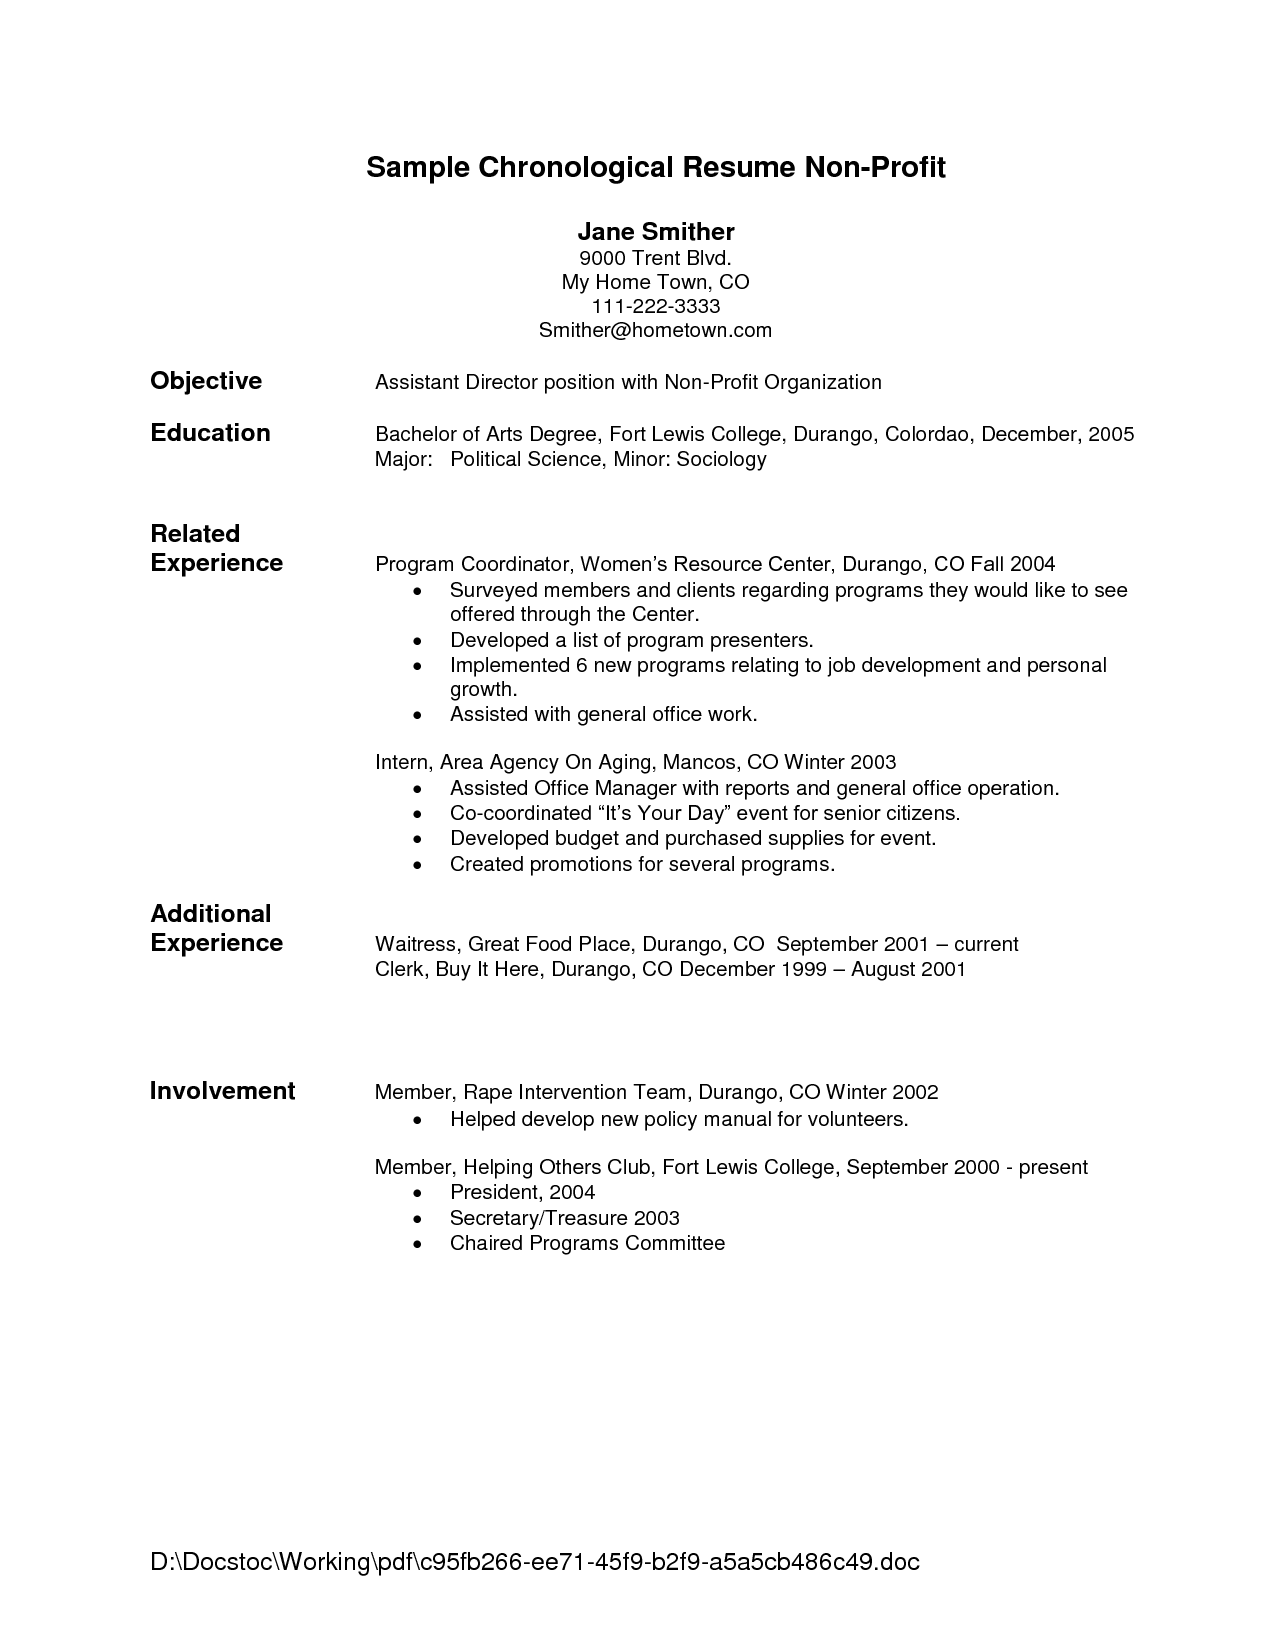 Chronological resume template monday resume pinterest chronological resume template maxwellsz